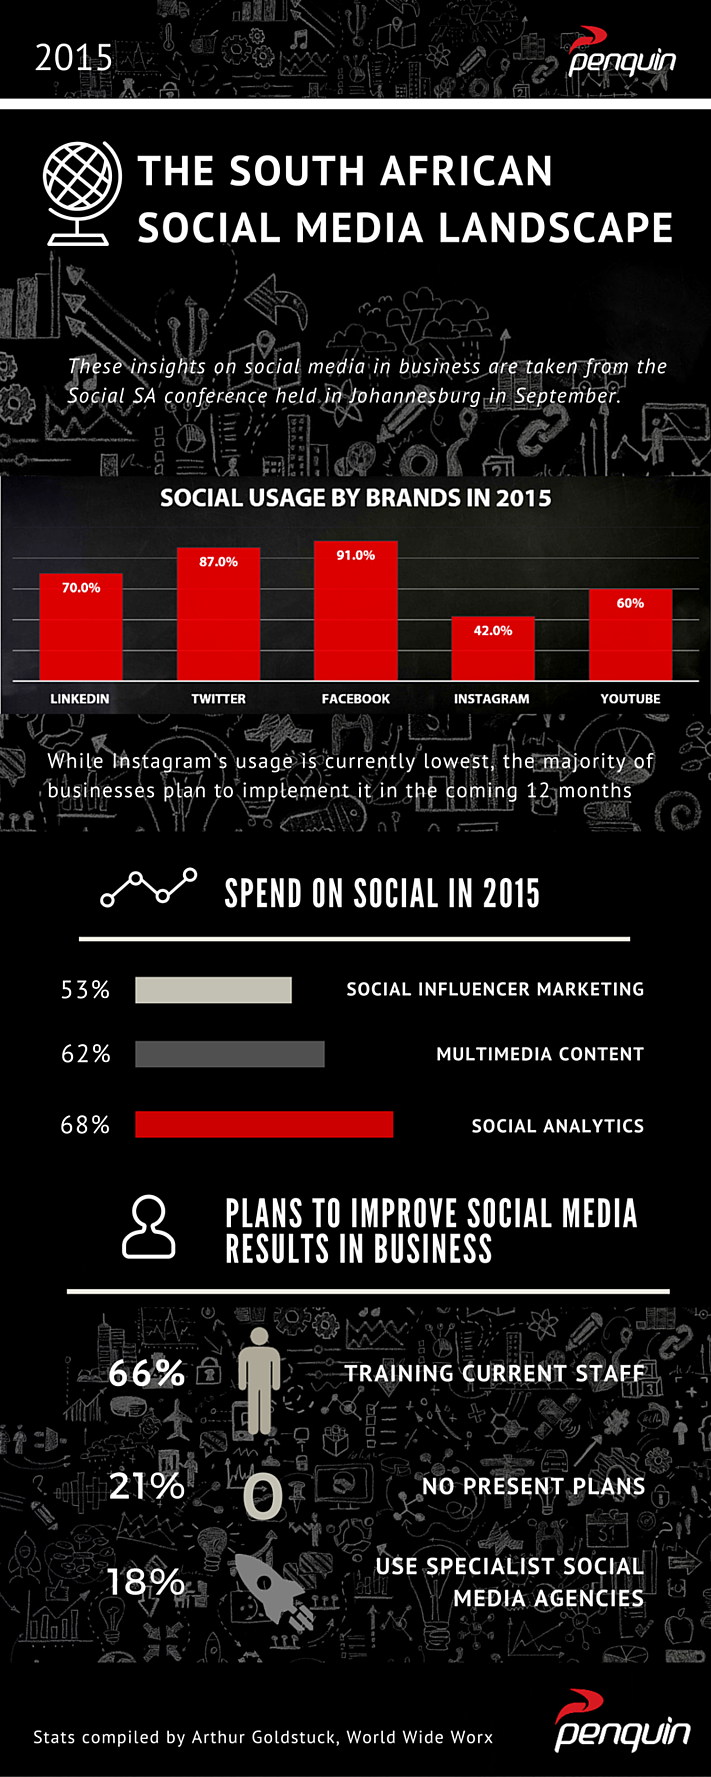 Penquin Infographic South African Social Media Landscape in Business 2015